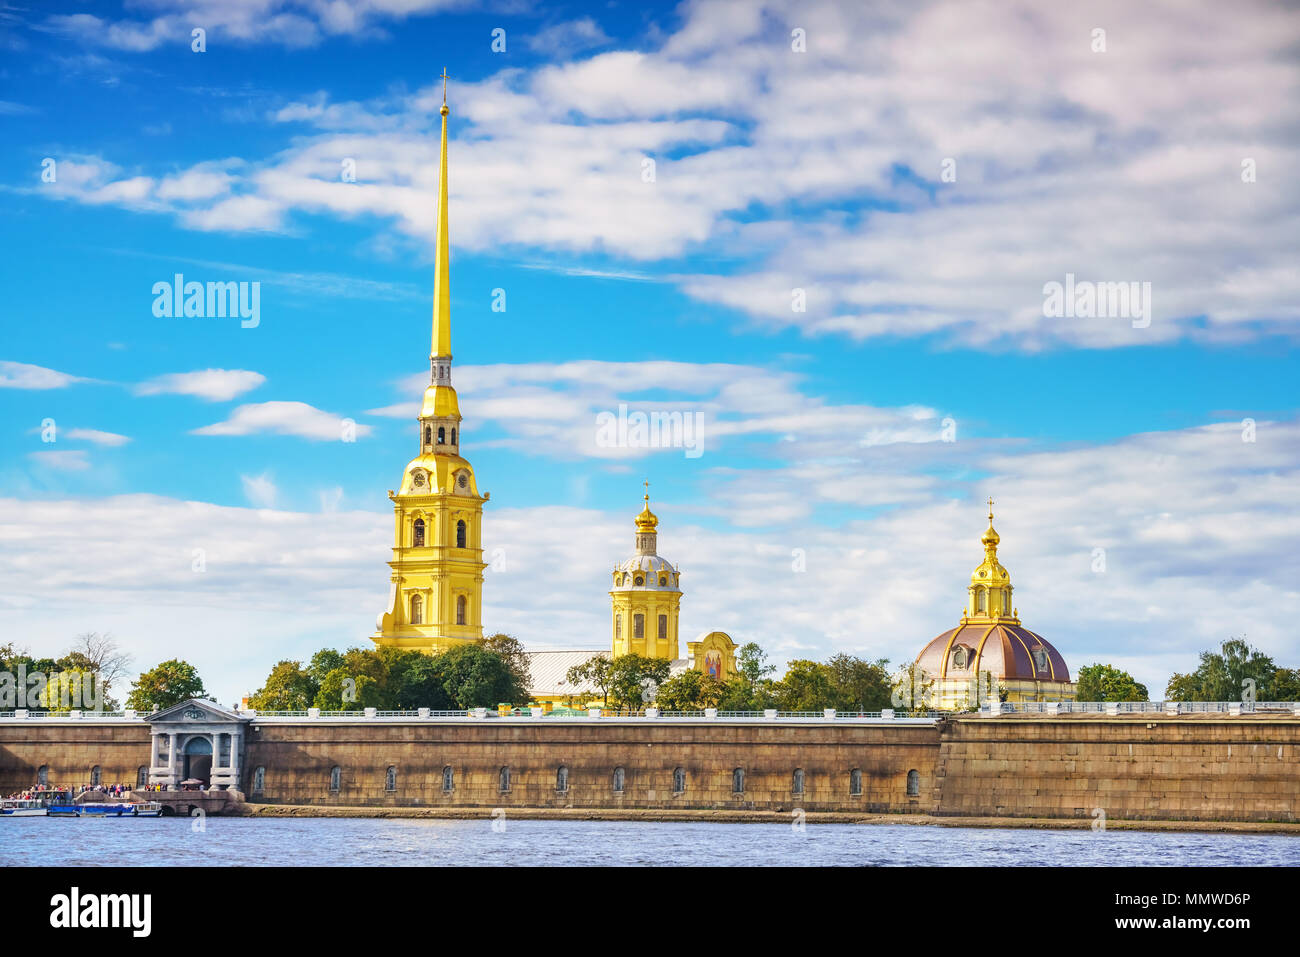 The Peter and Paul Fortress in St.Petersburg - Stock Image